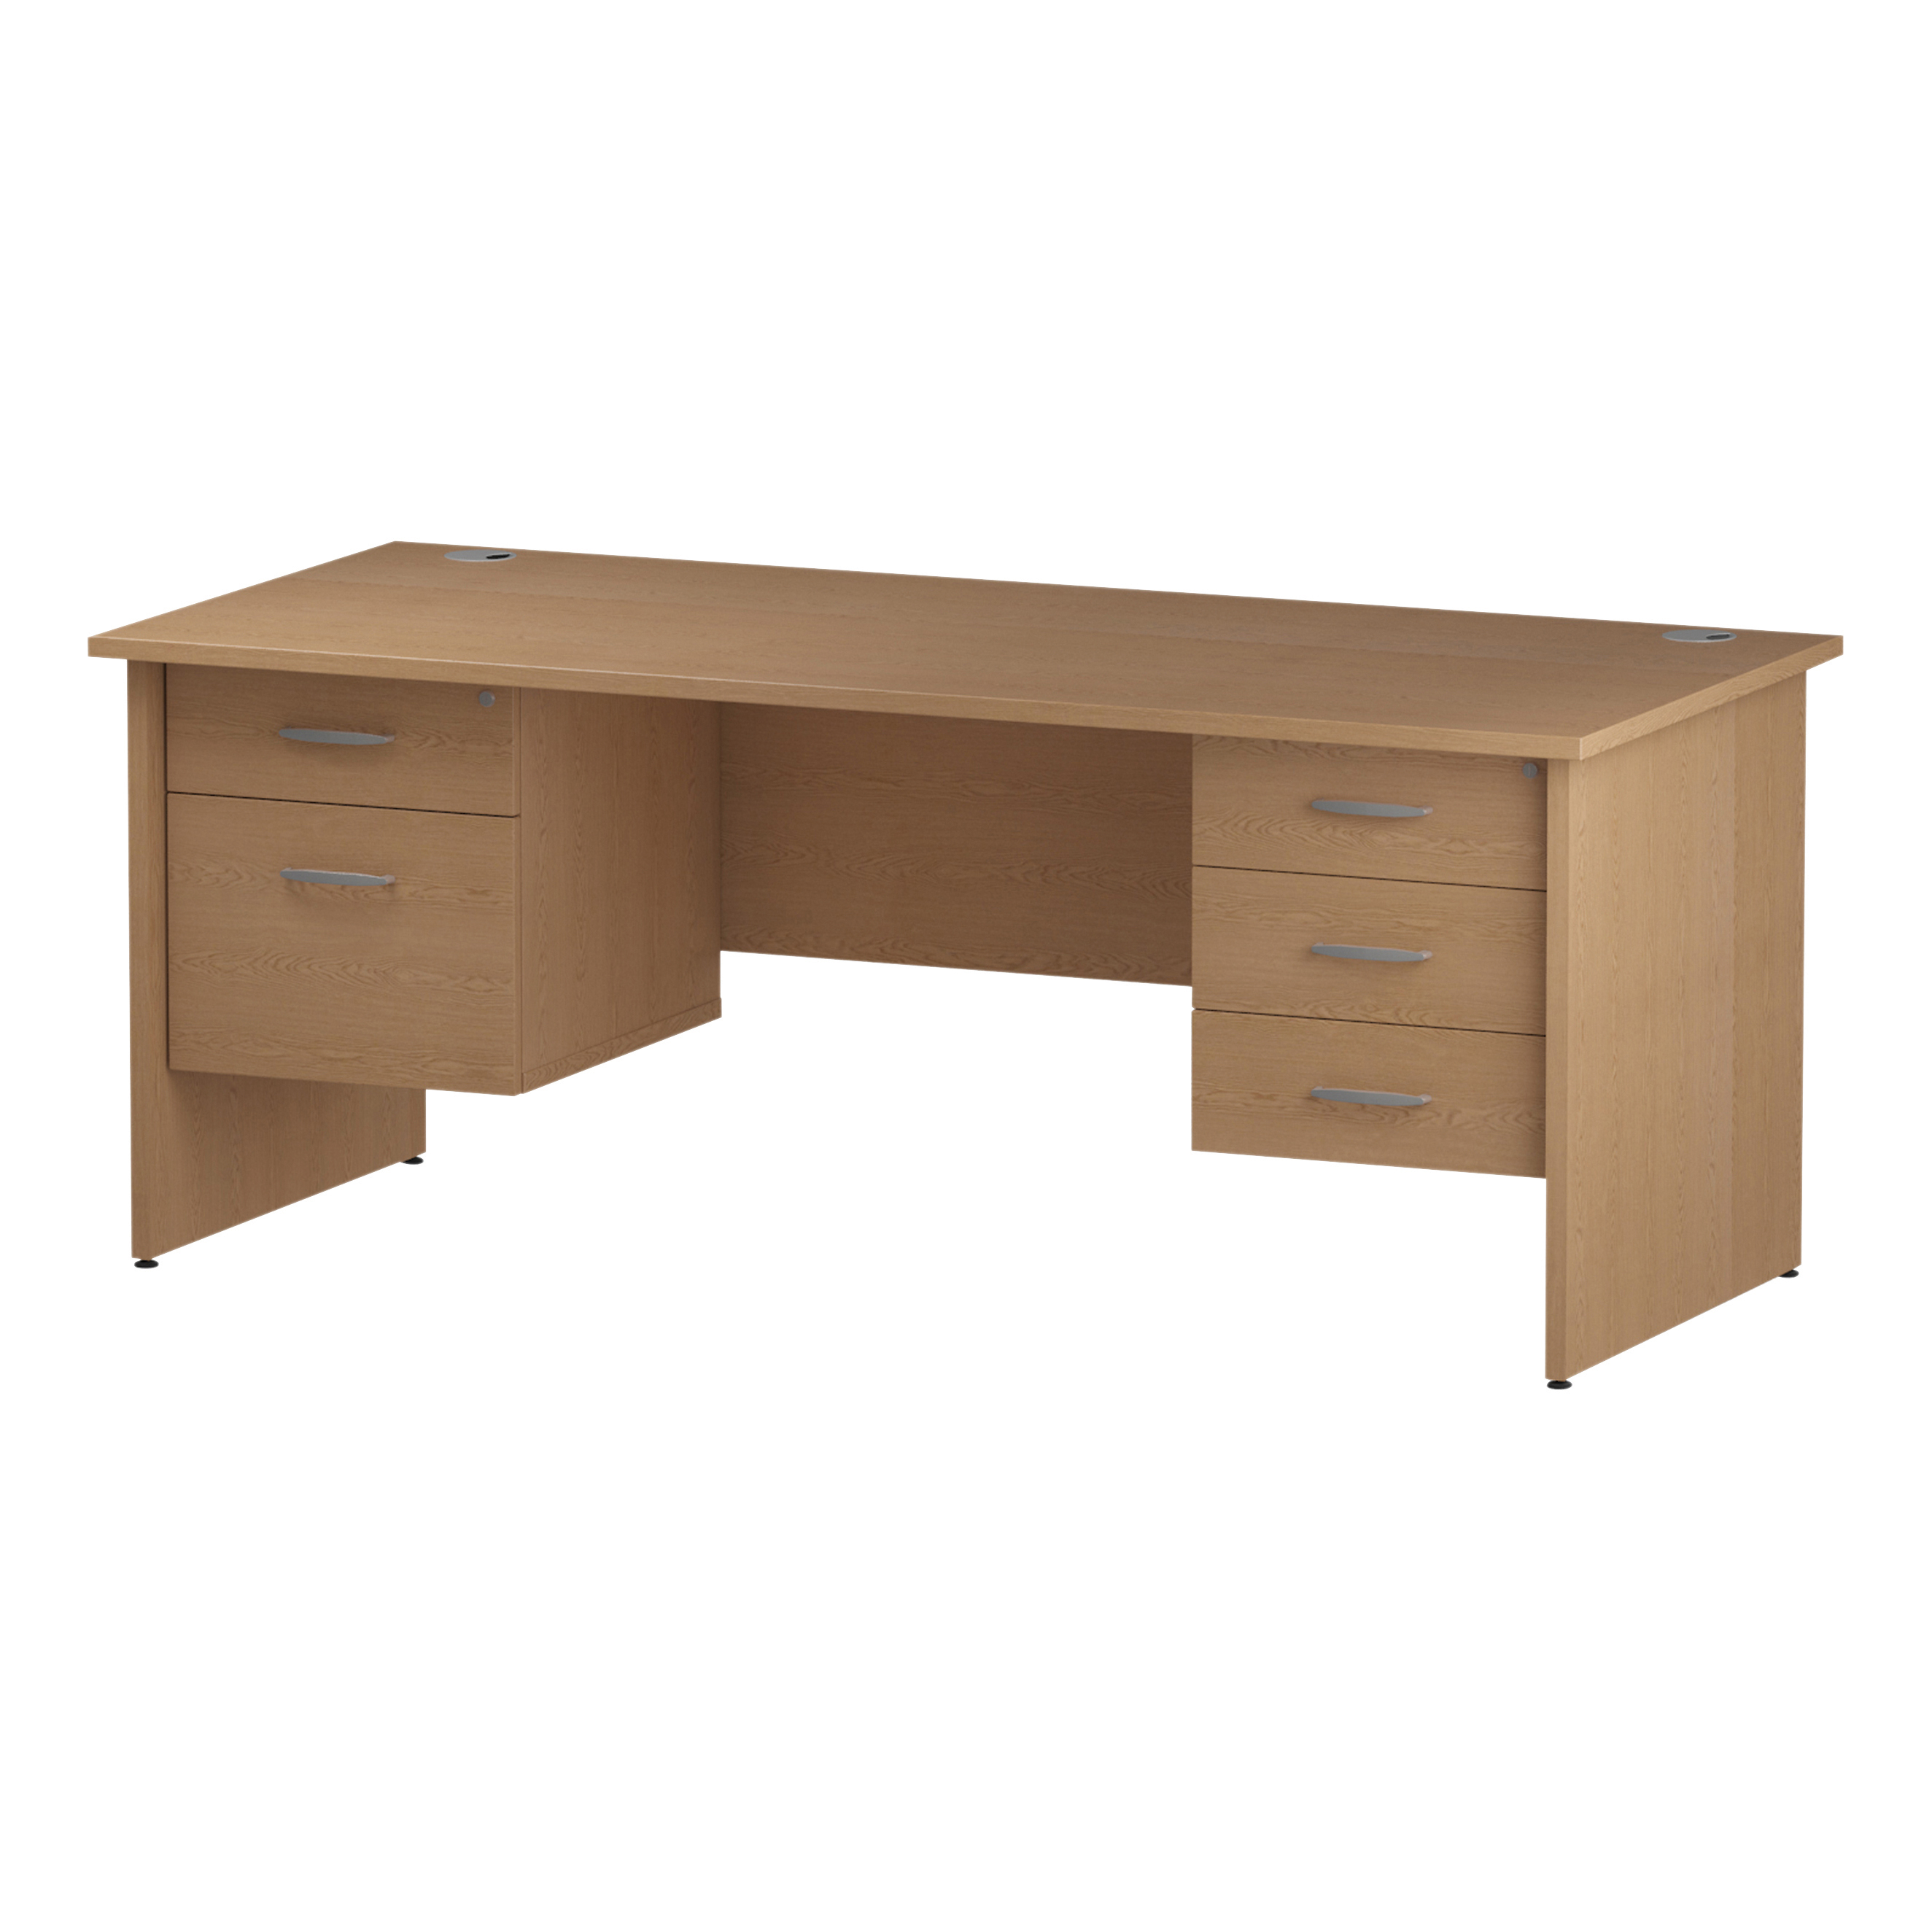 Trexus Rectangular Desk Panel End Leg 1800x800mm Double Fixed Pedestal 2&3 Drawers Oak Ref I002721